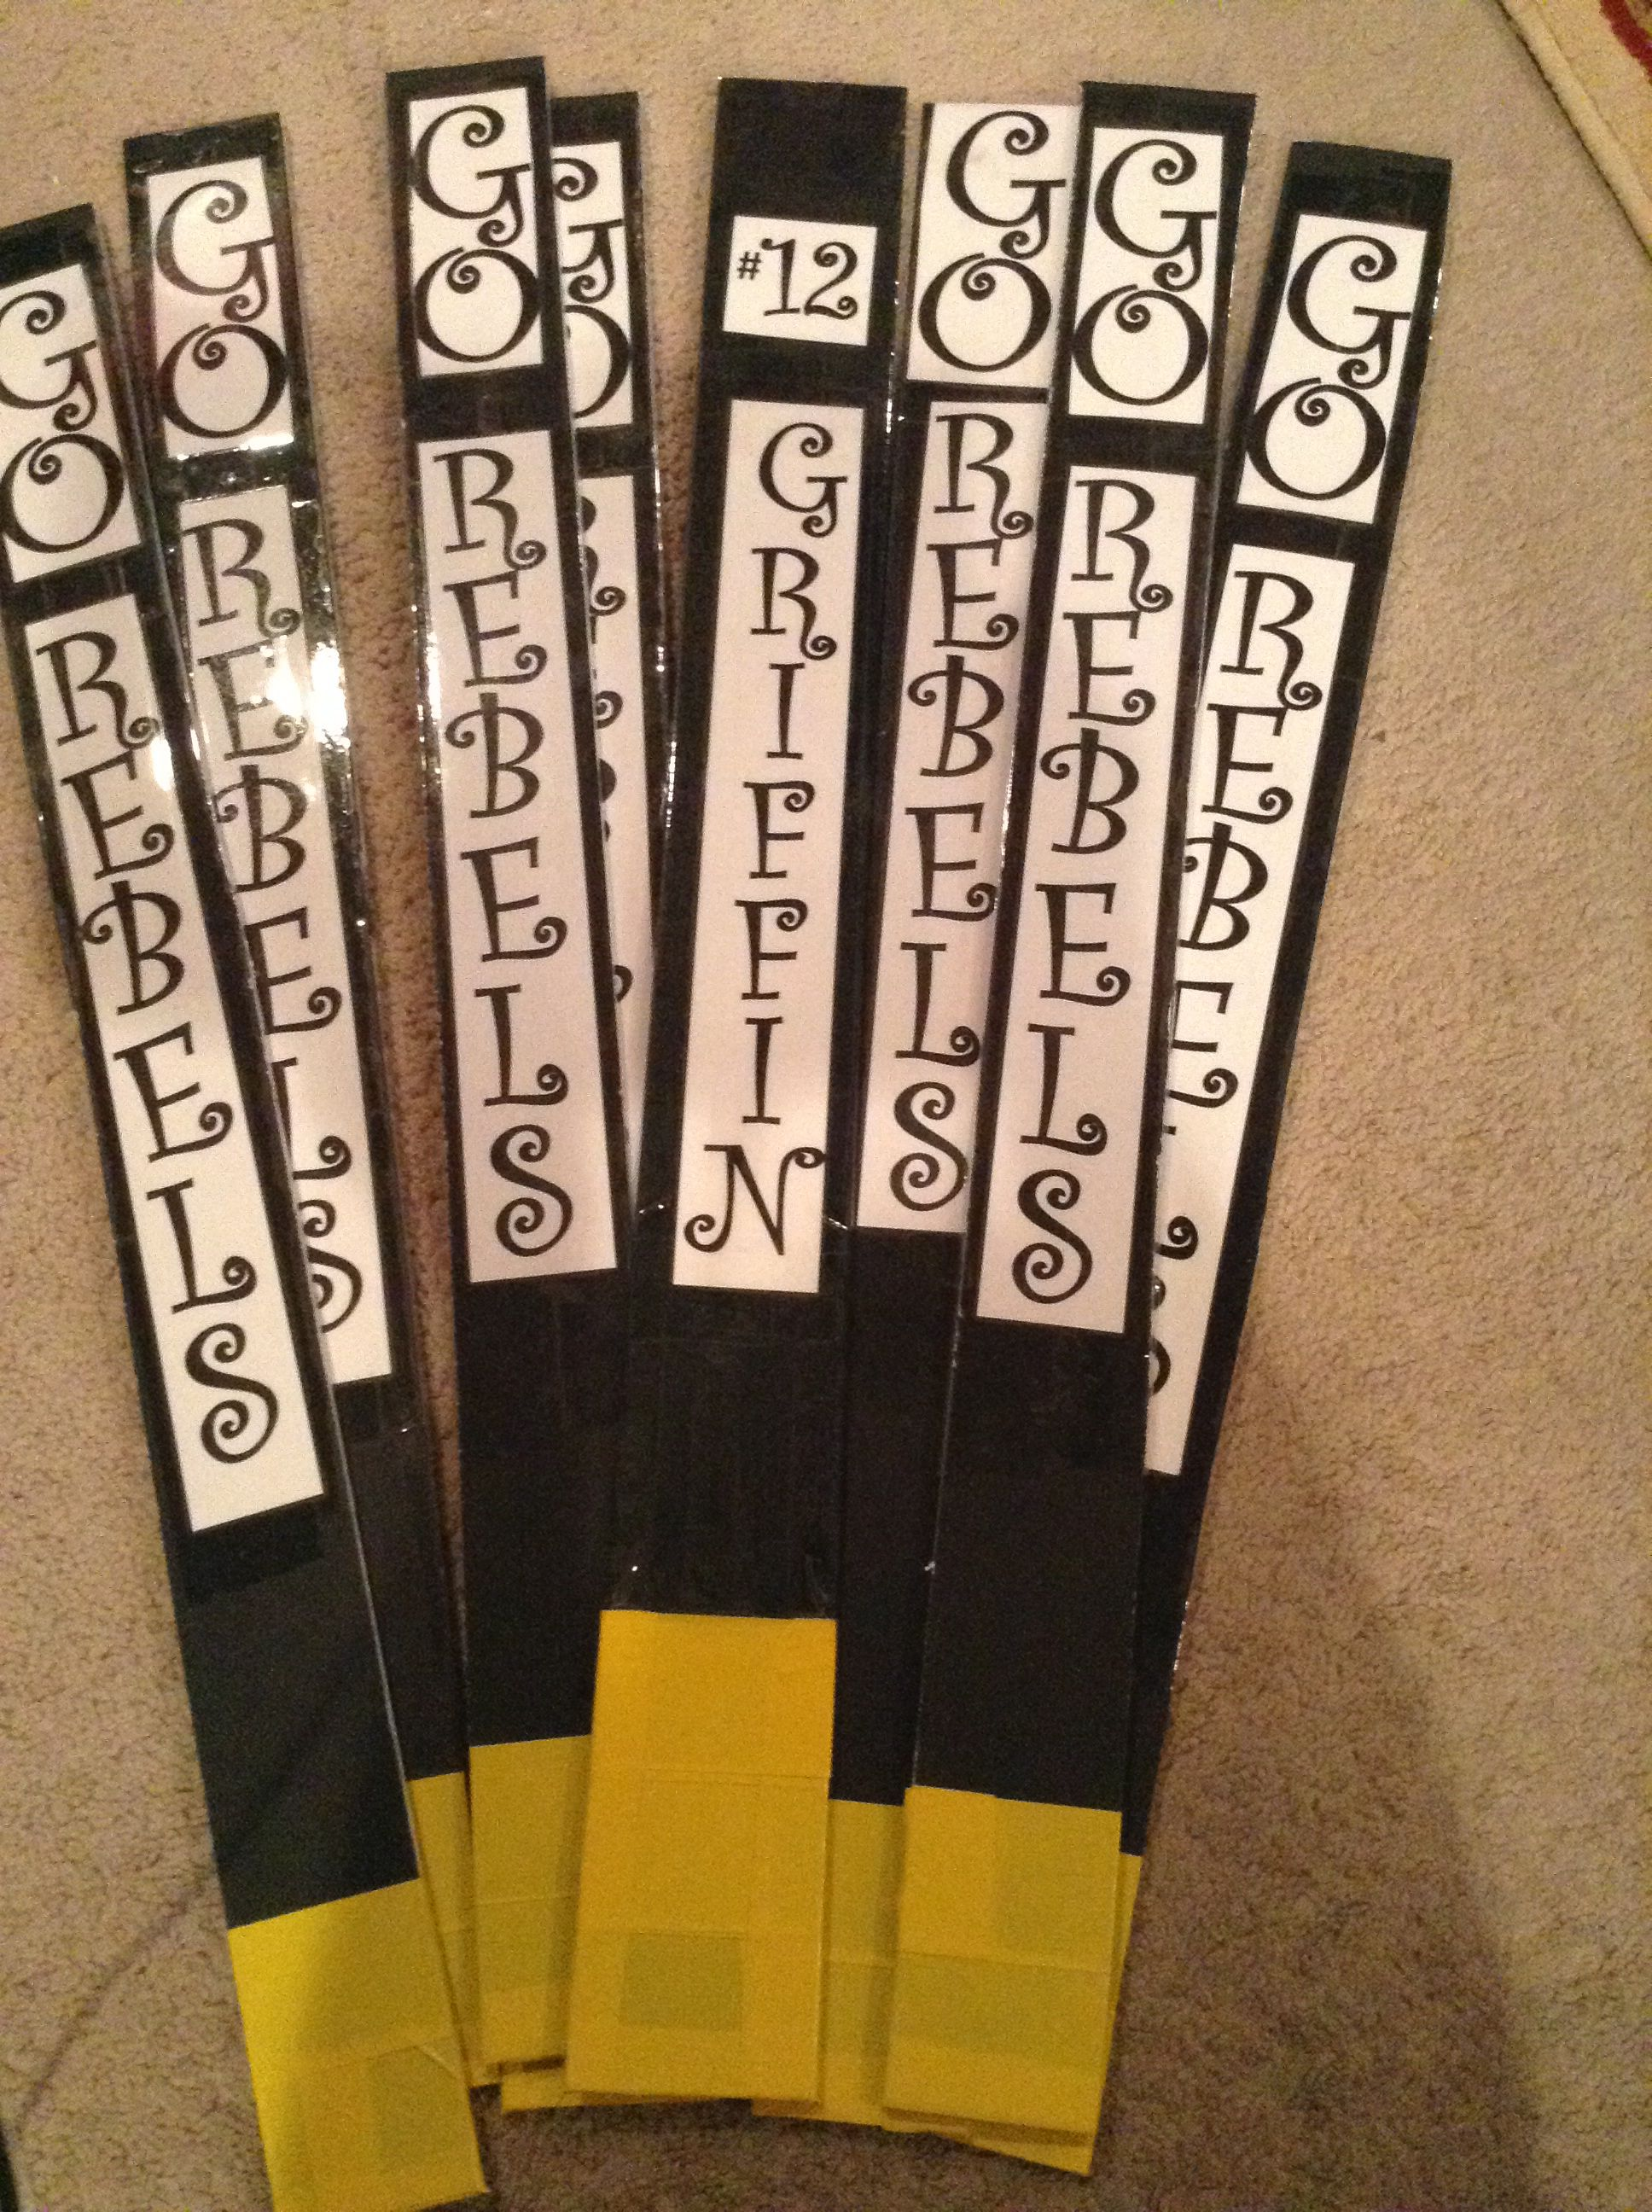 Volleyball Cheer Sticks Super Easy To Make With Foam Core Board And Packing Tape Cheer Posters Volleyball Cheers Packing Tape